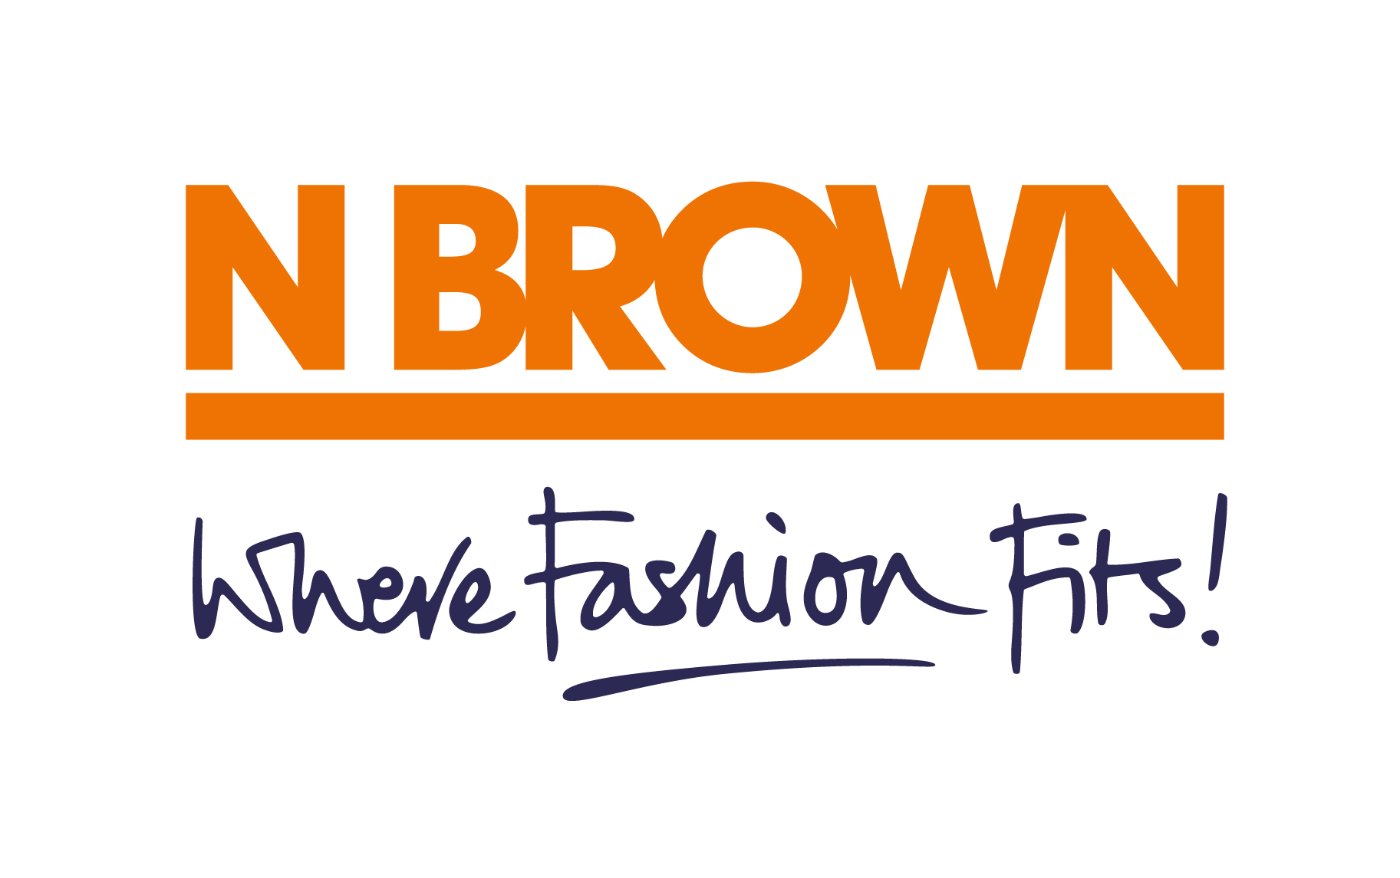 N Brown gets personal for growth